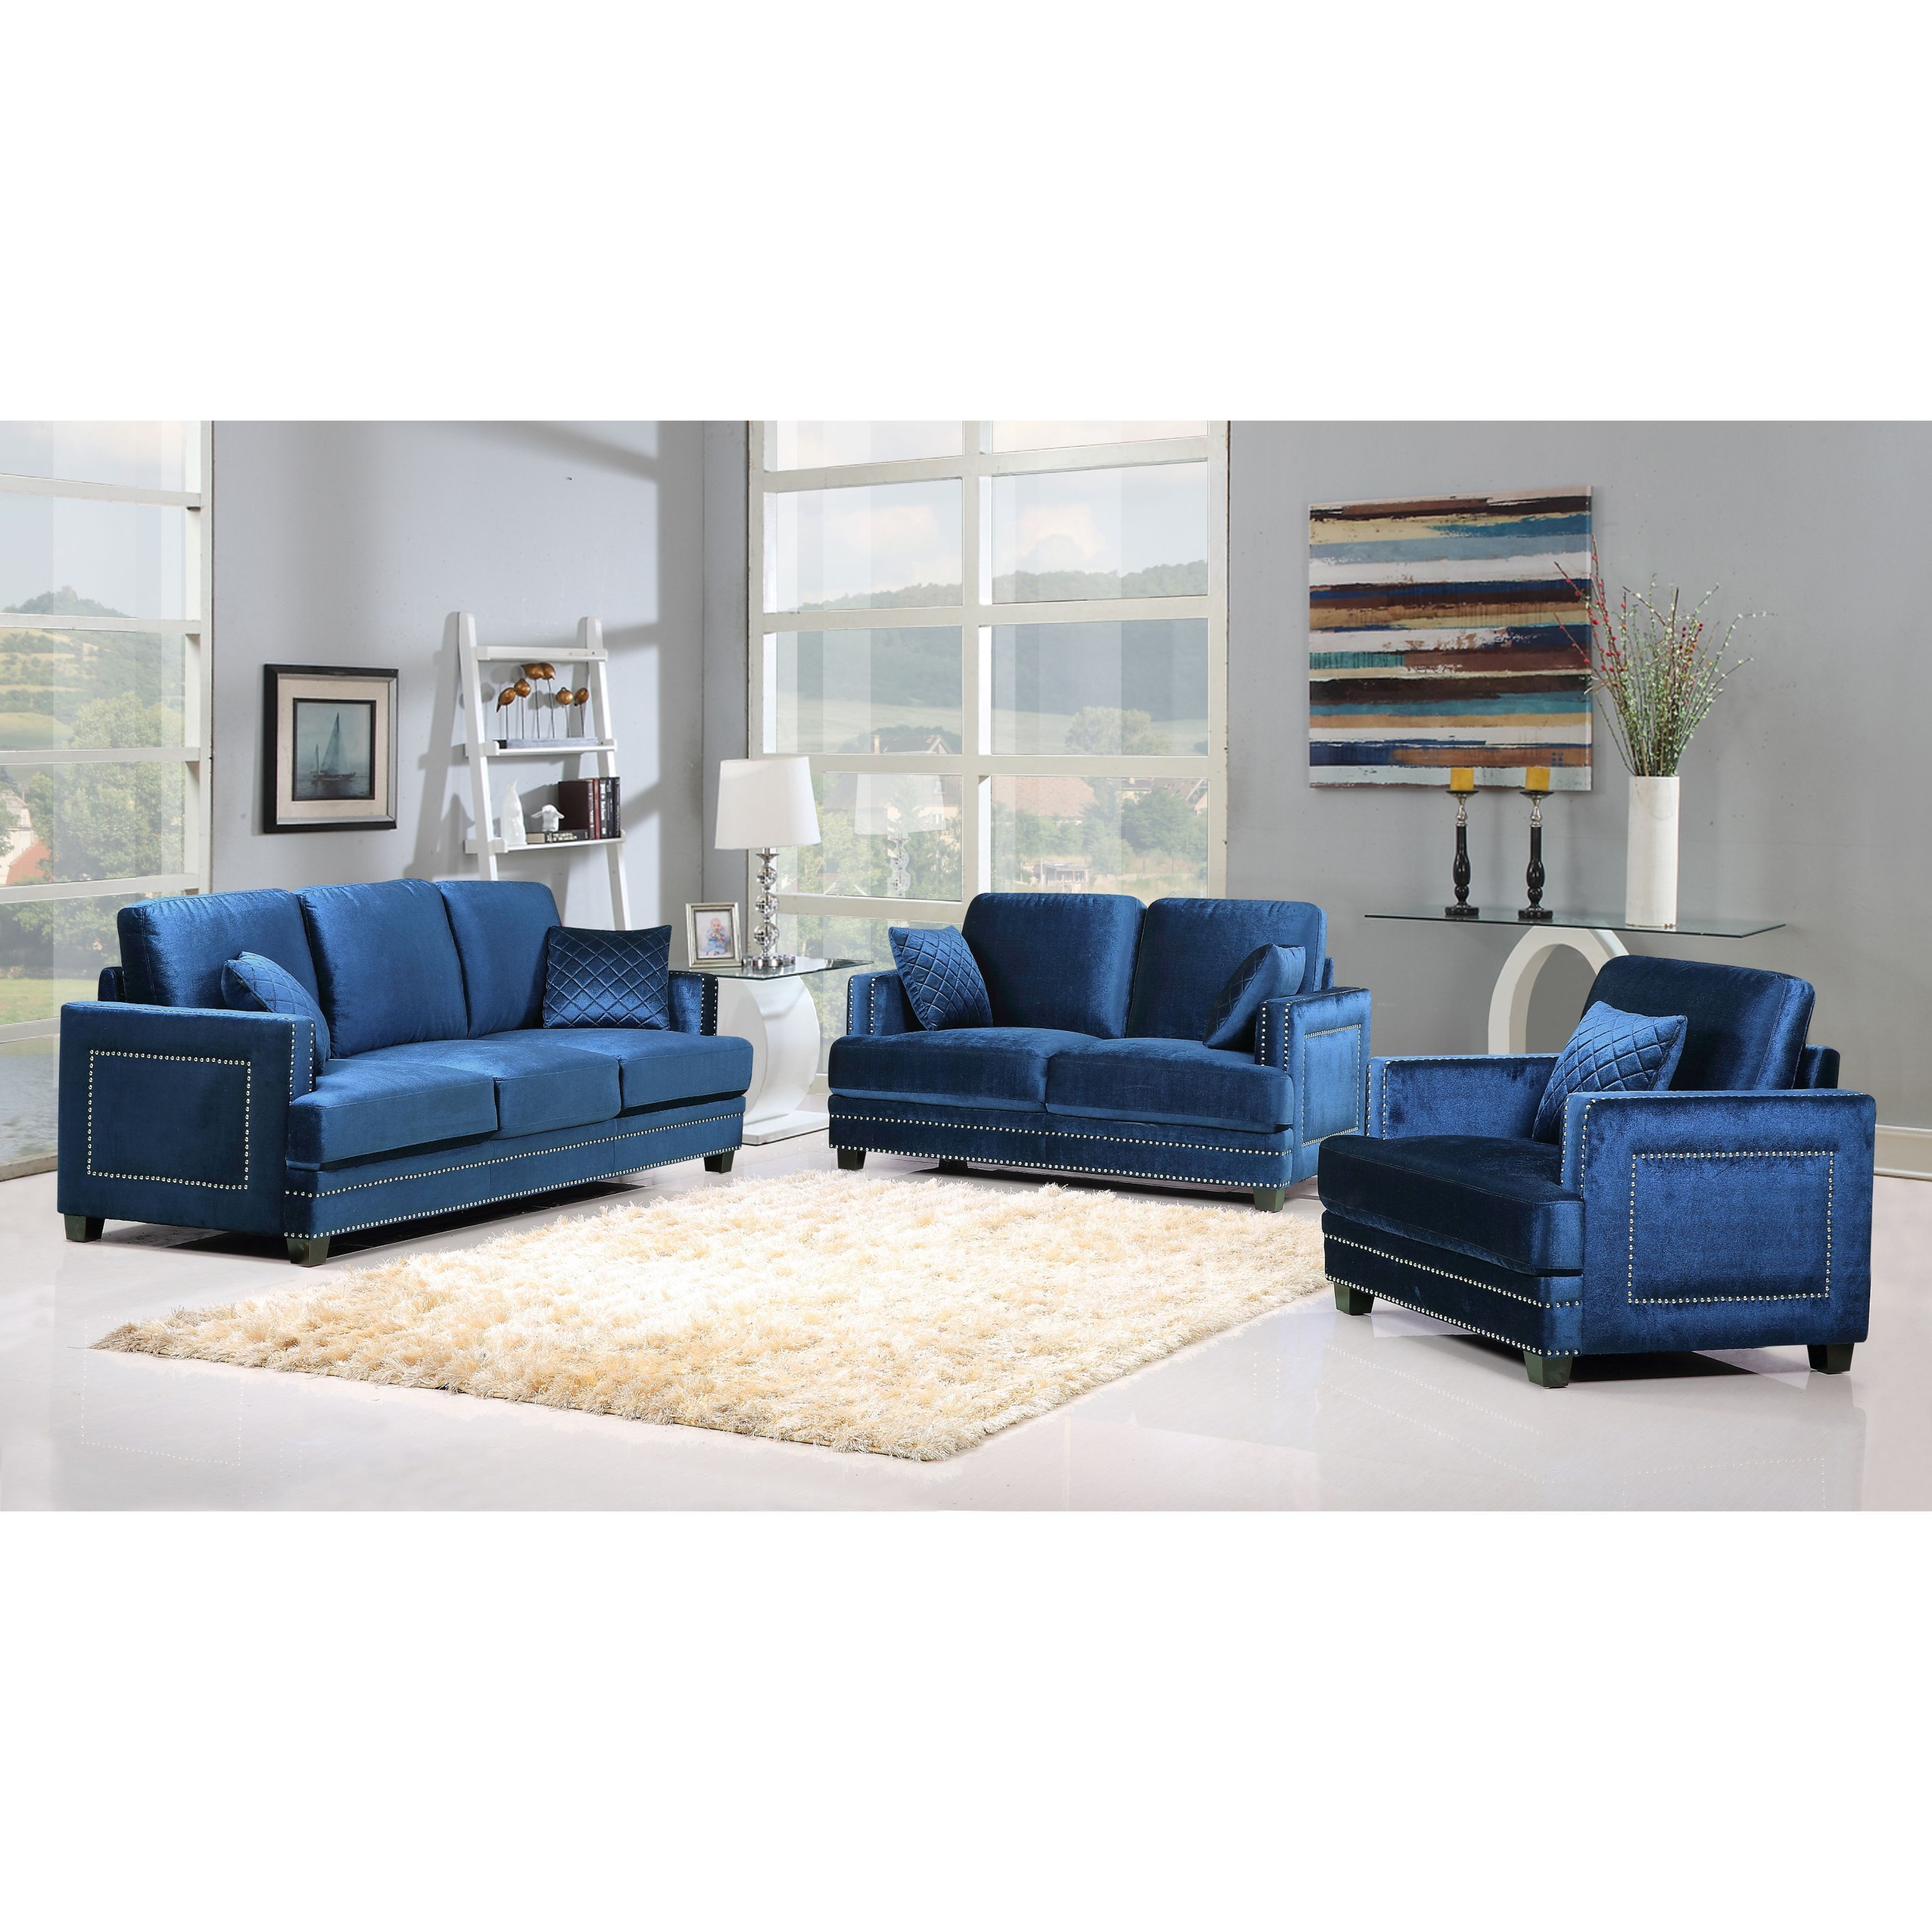 The Ferrara Living Room Set Is An Impeccable Example Of Truly Mesmerizing Design Your Living Room Online Decorating Design